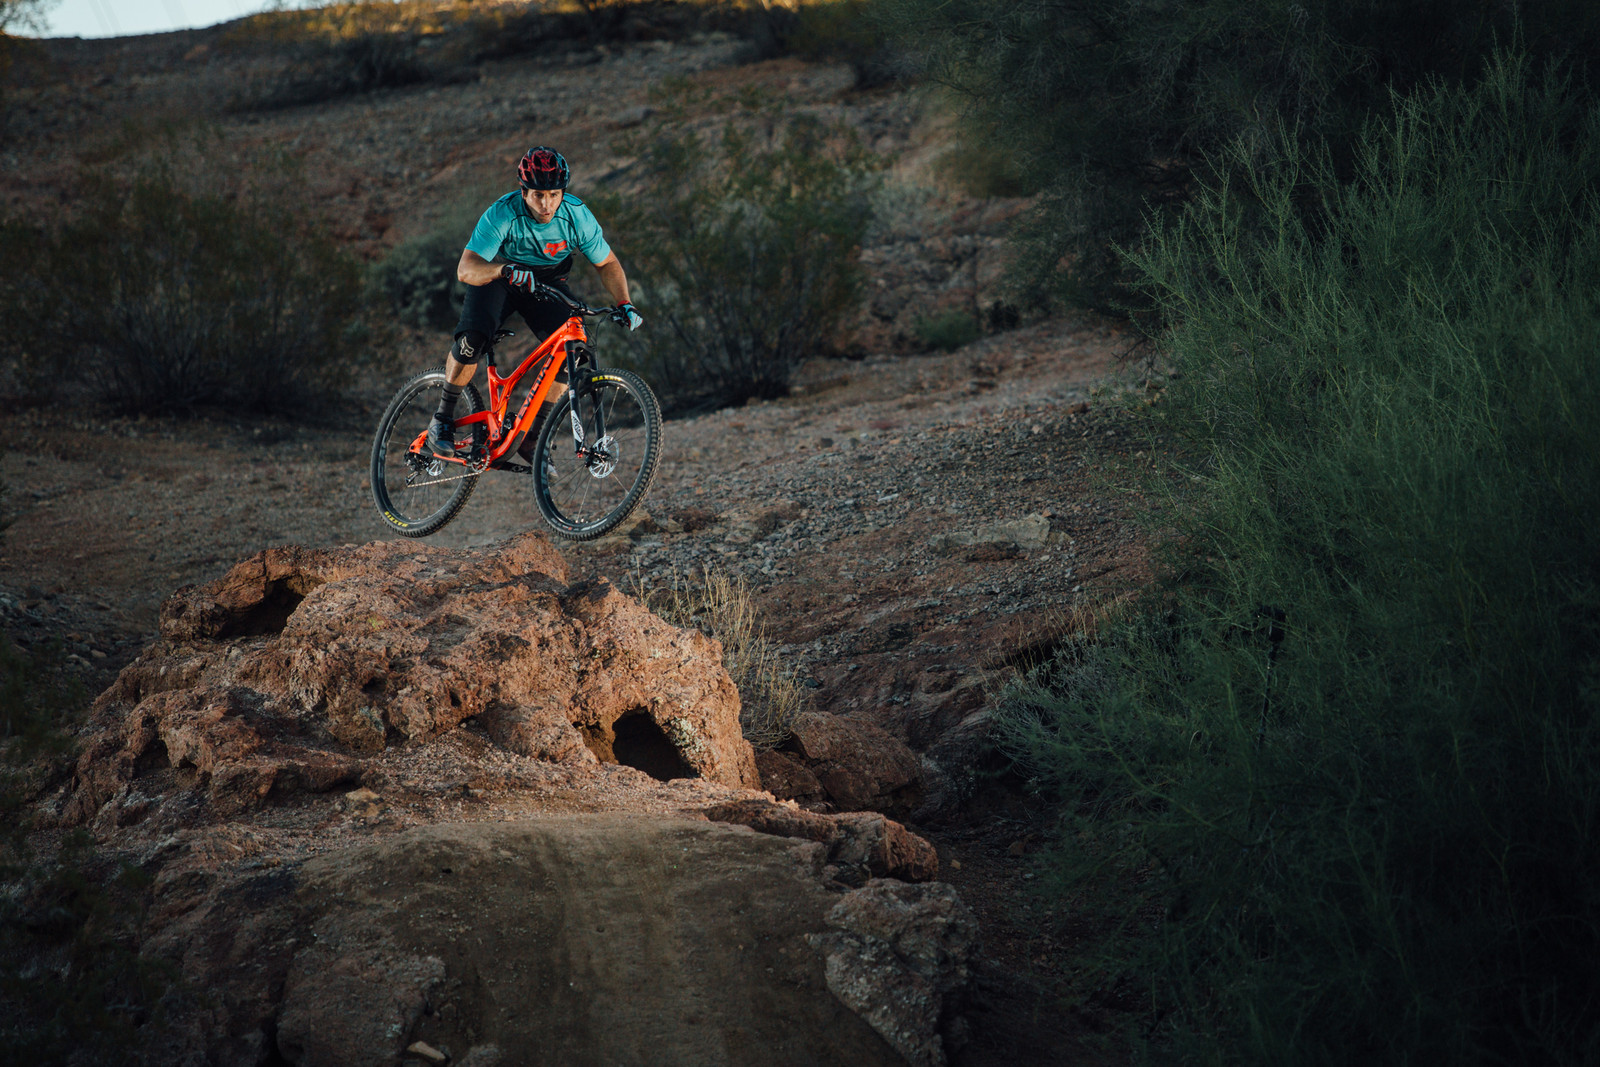 Evil The Following X1 - 2016 Vital MTB Test Sessions - Evil The Following X1 - 2016 Vital MTB Test Sessions - Mountain Biking Pictures - Vital MTB